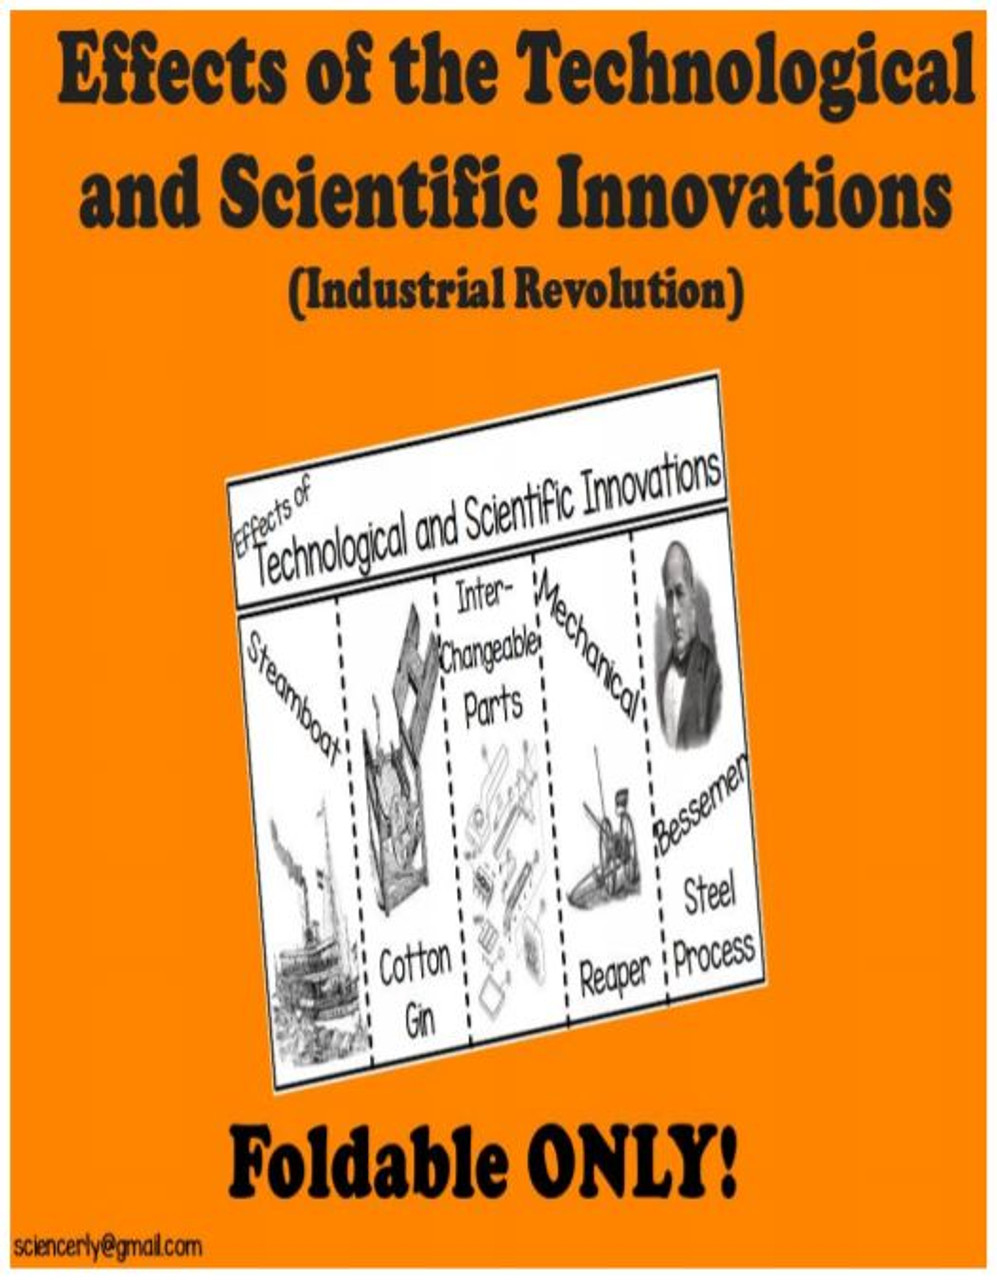 Effects of Technological and Scientific Innovations FOLDABLE Only